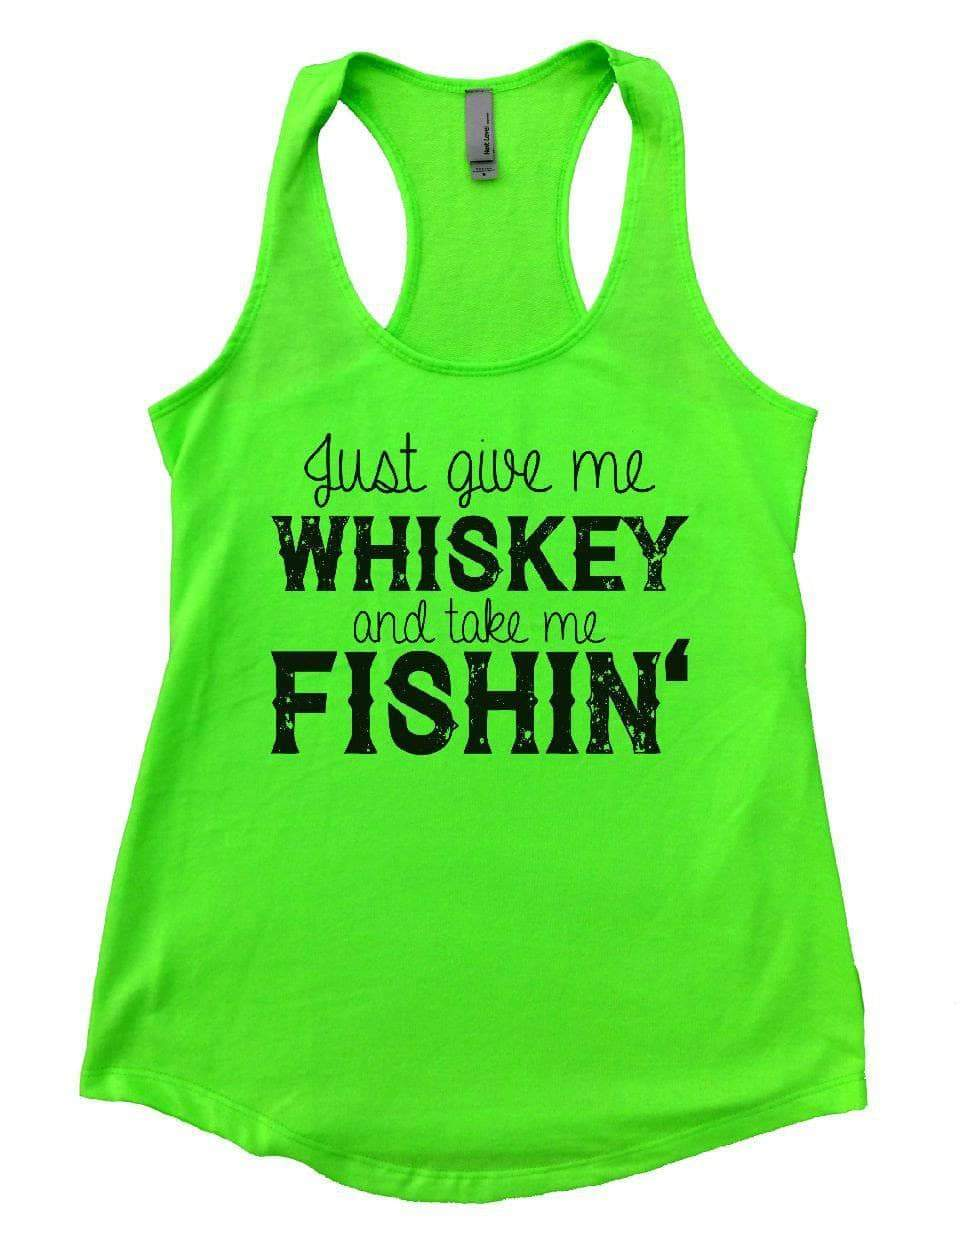 Just Give Me WHISKEY And Take Me FISHIN' Womens Workout Tank Top Small Womens Tank Tops Neon Green